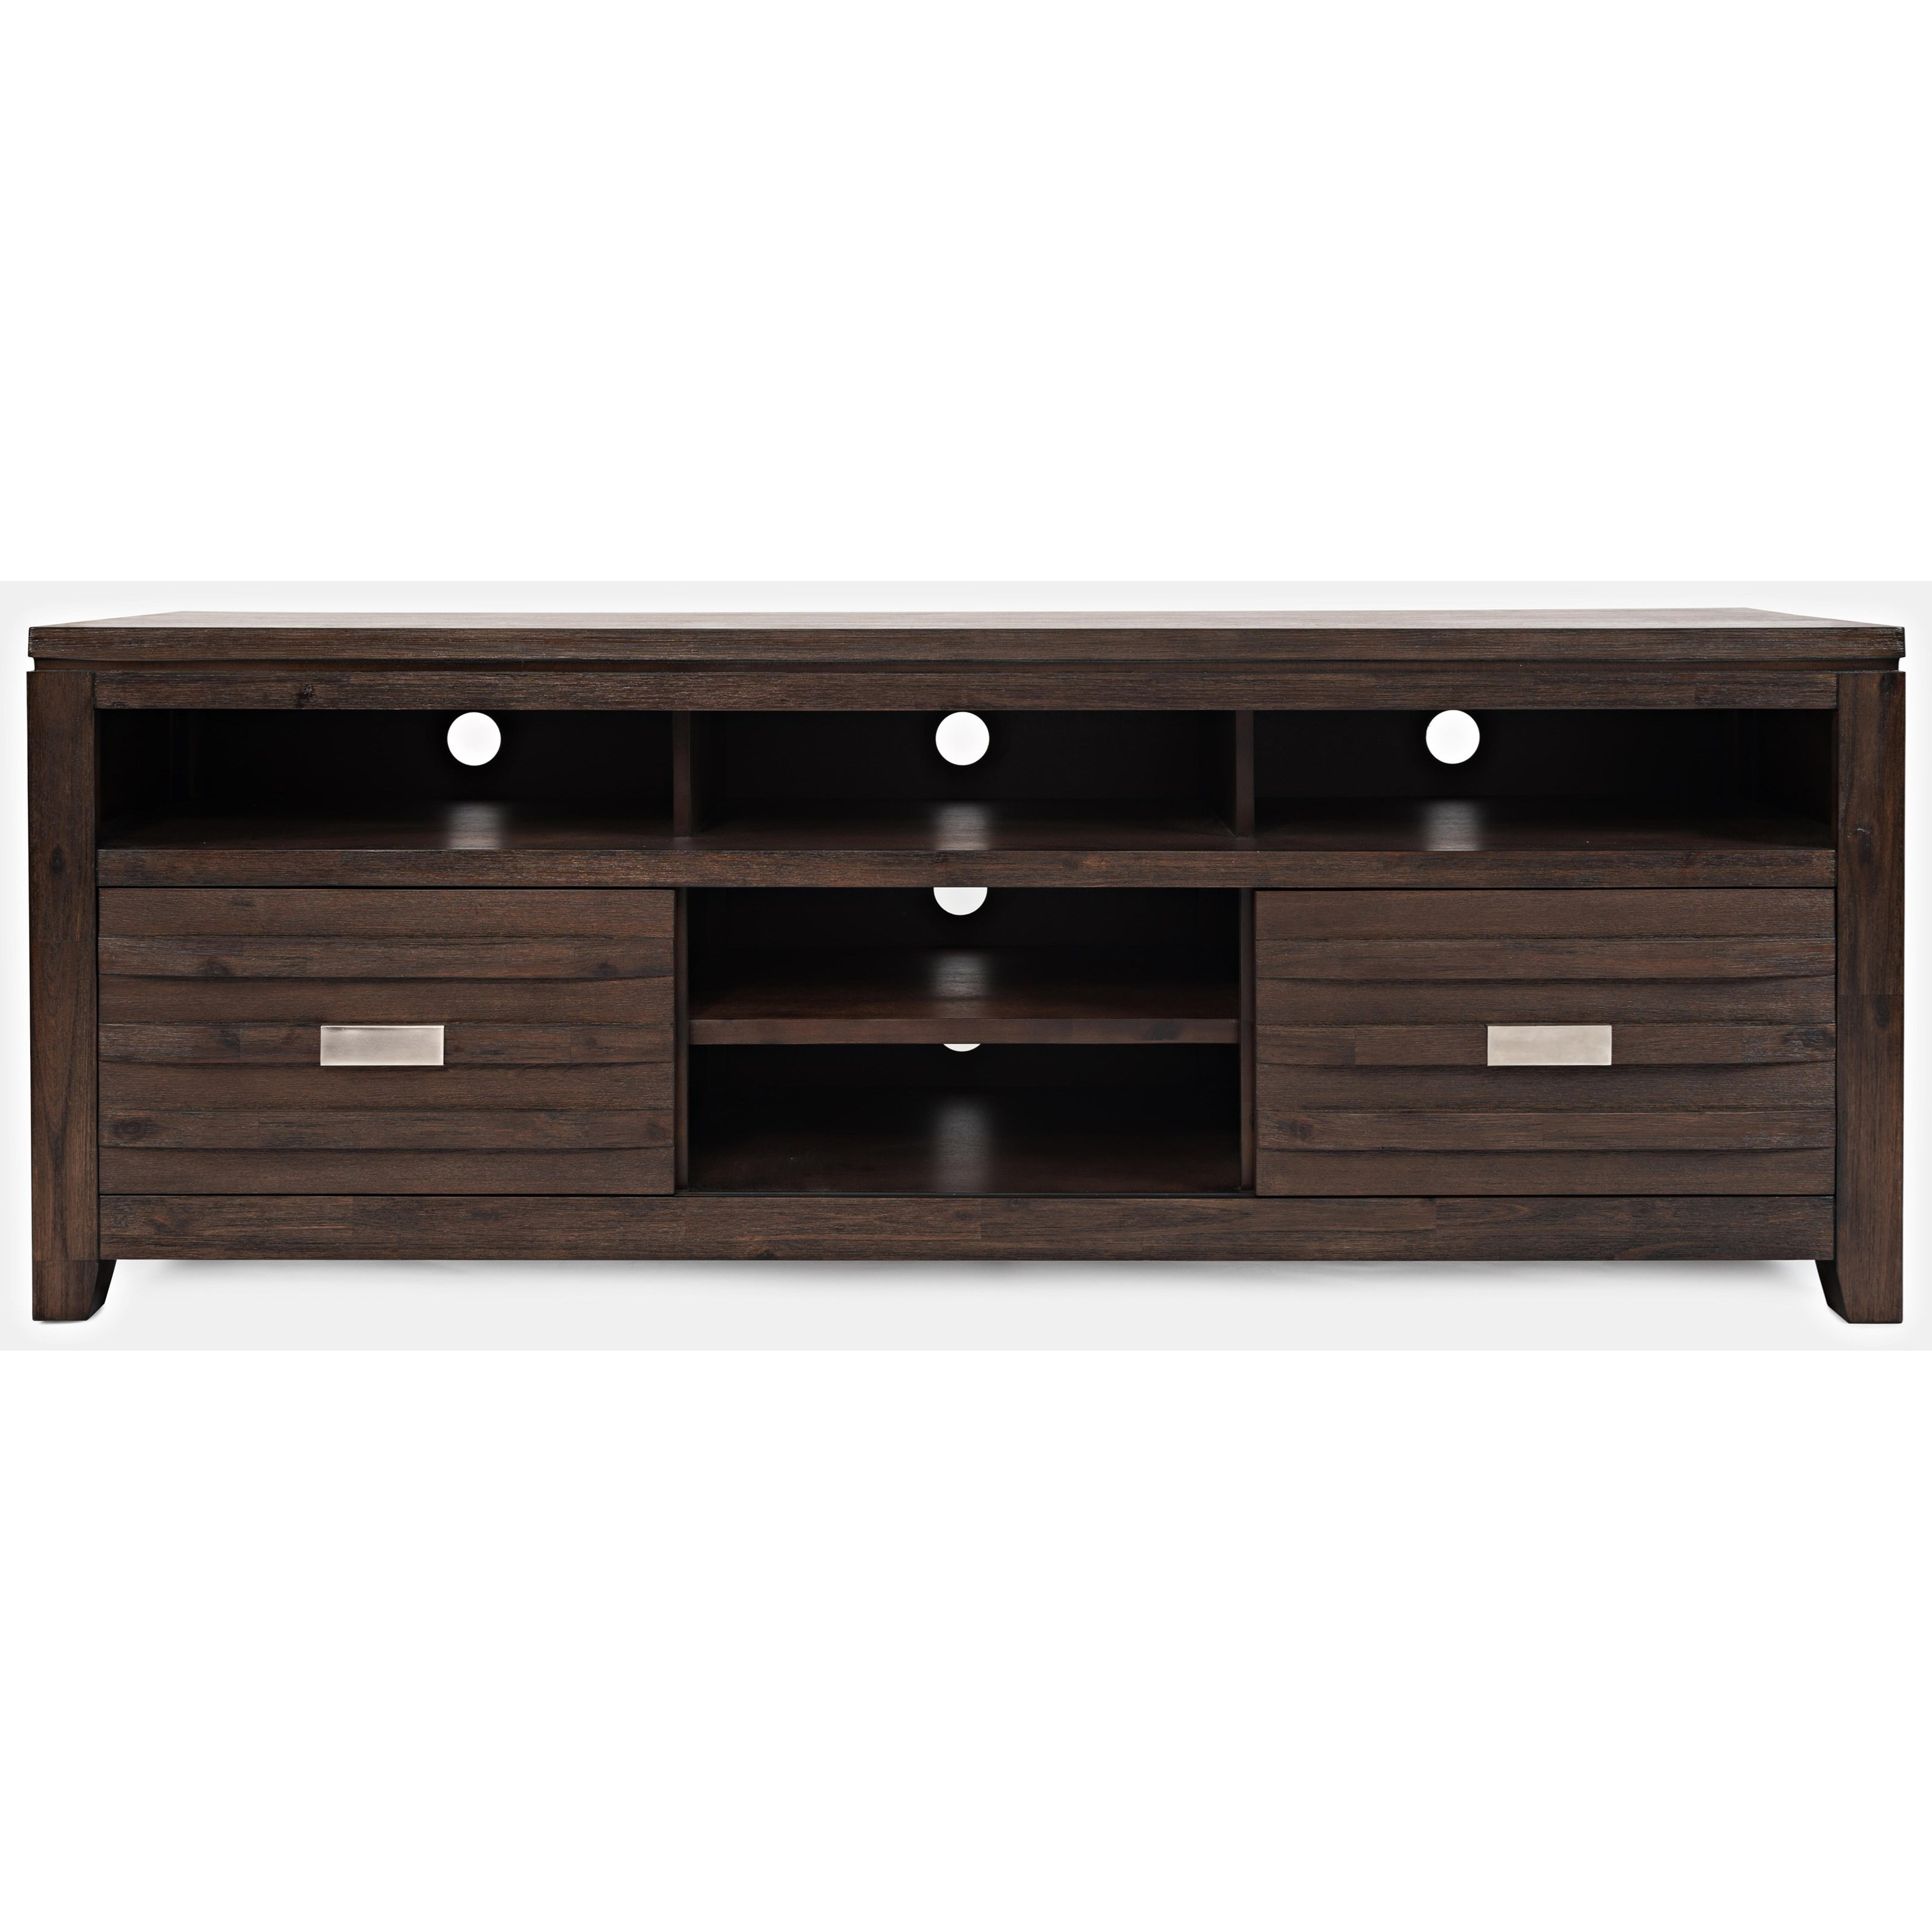 "Altamonte  70"" Console by Jofran at Van Hill Furniture"